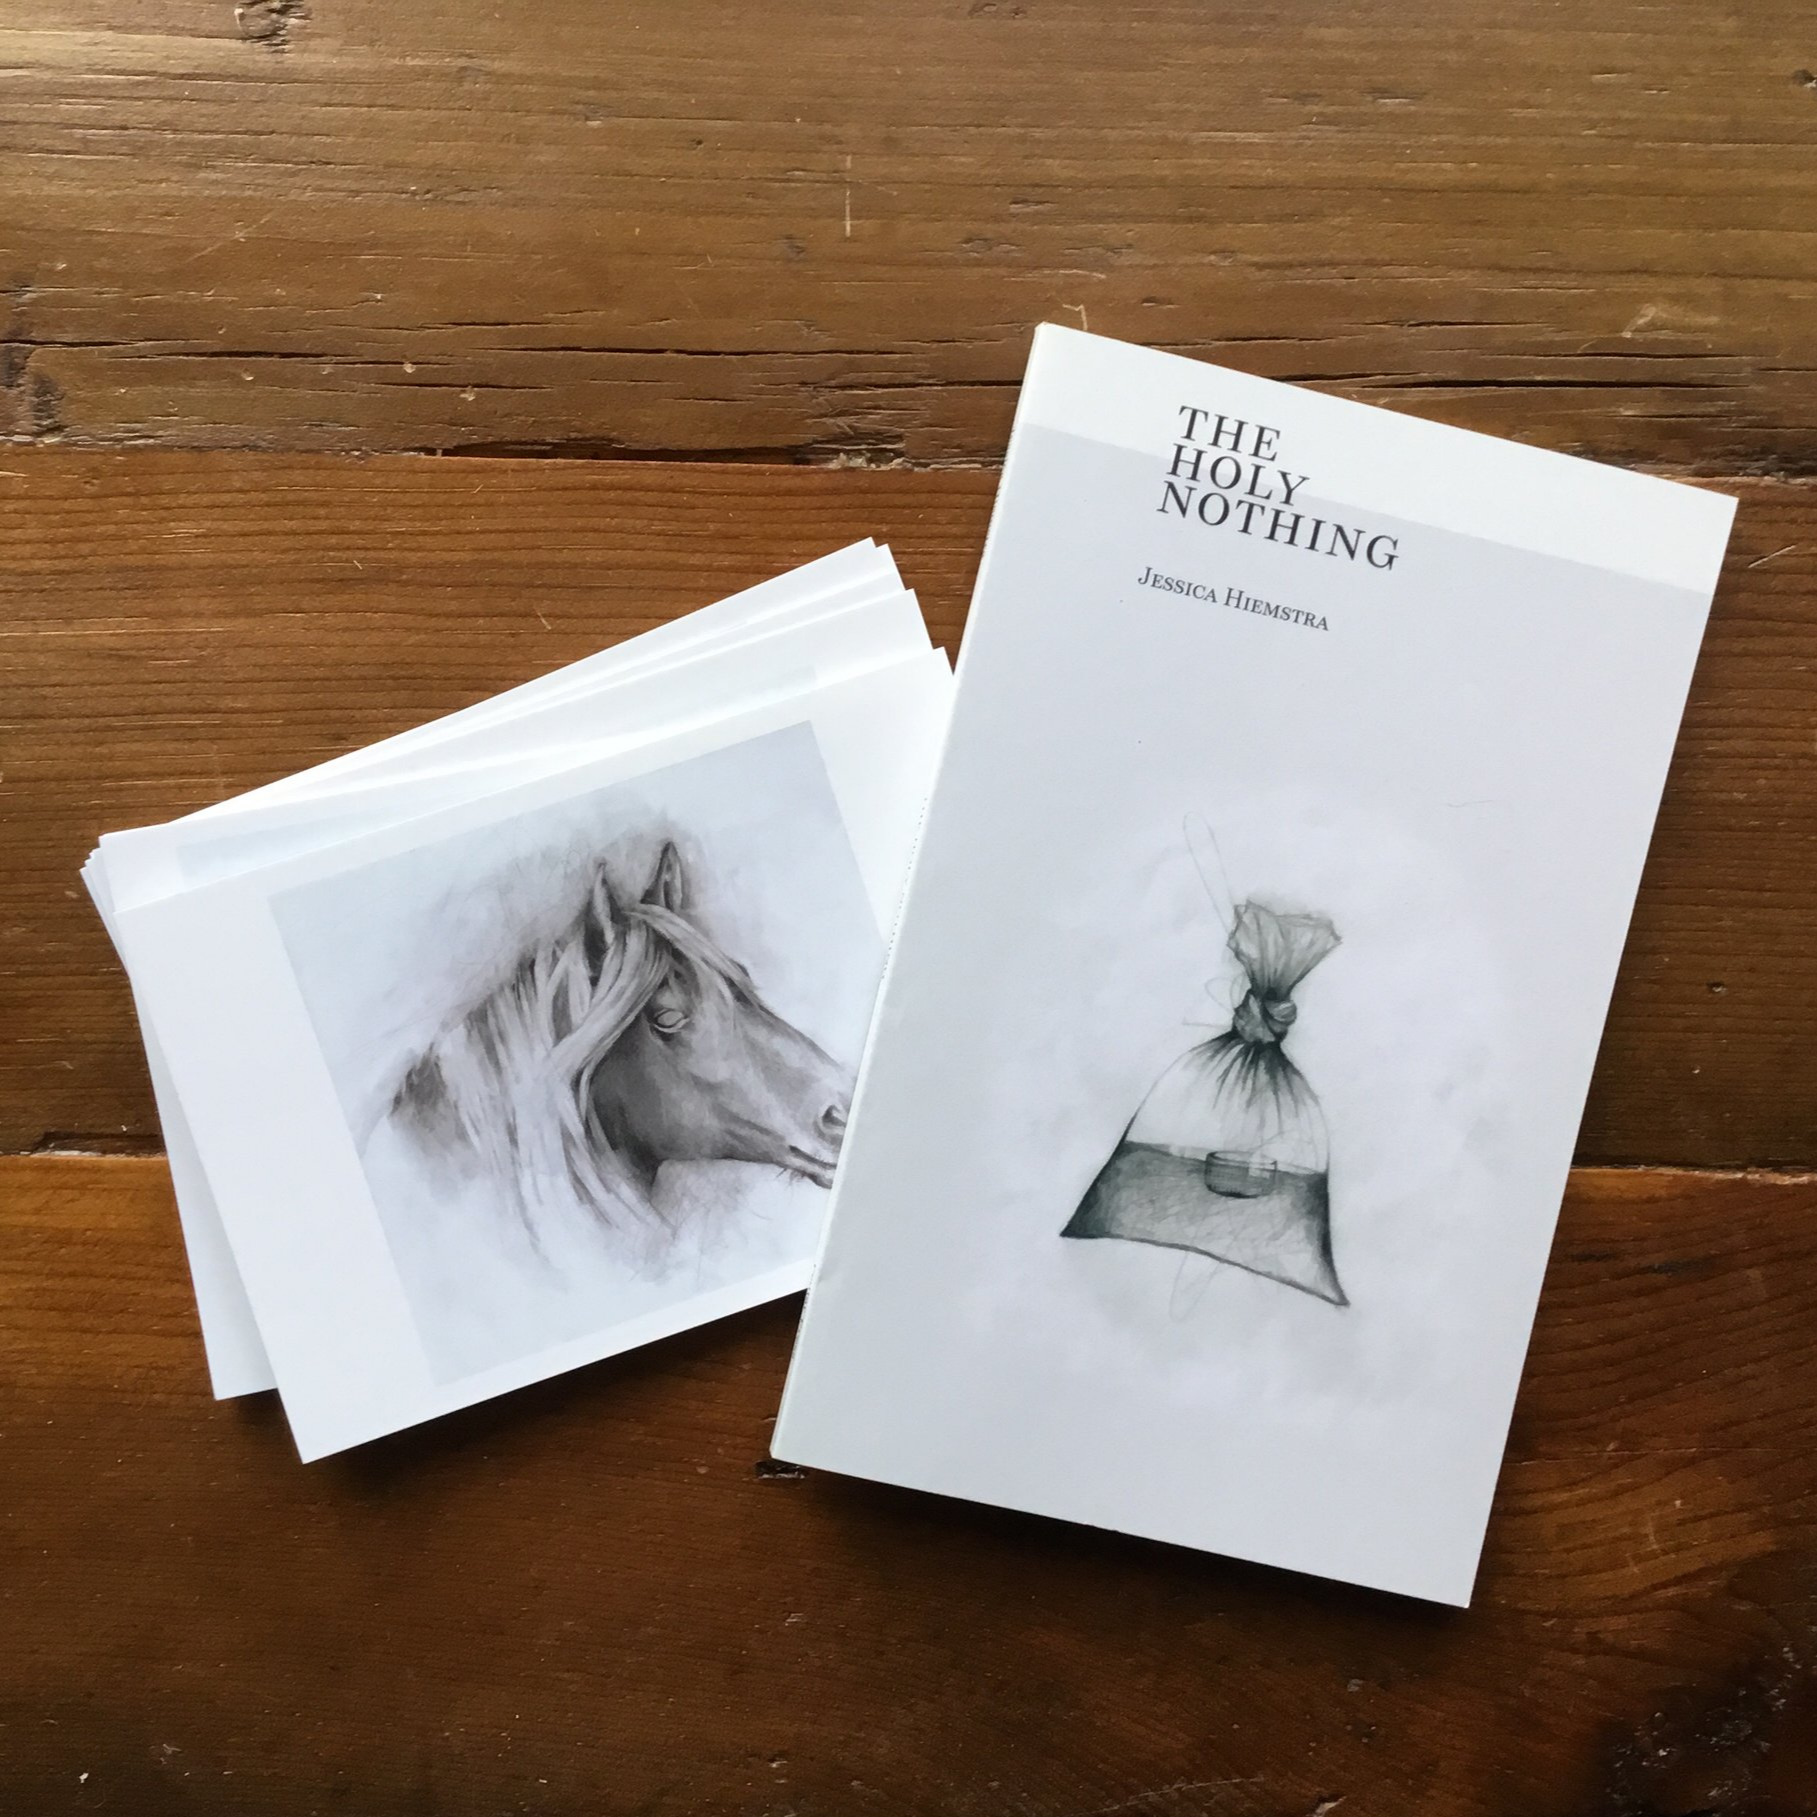 holy-nothing-poetry-book-postcards-illustration-set.jpg